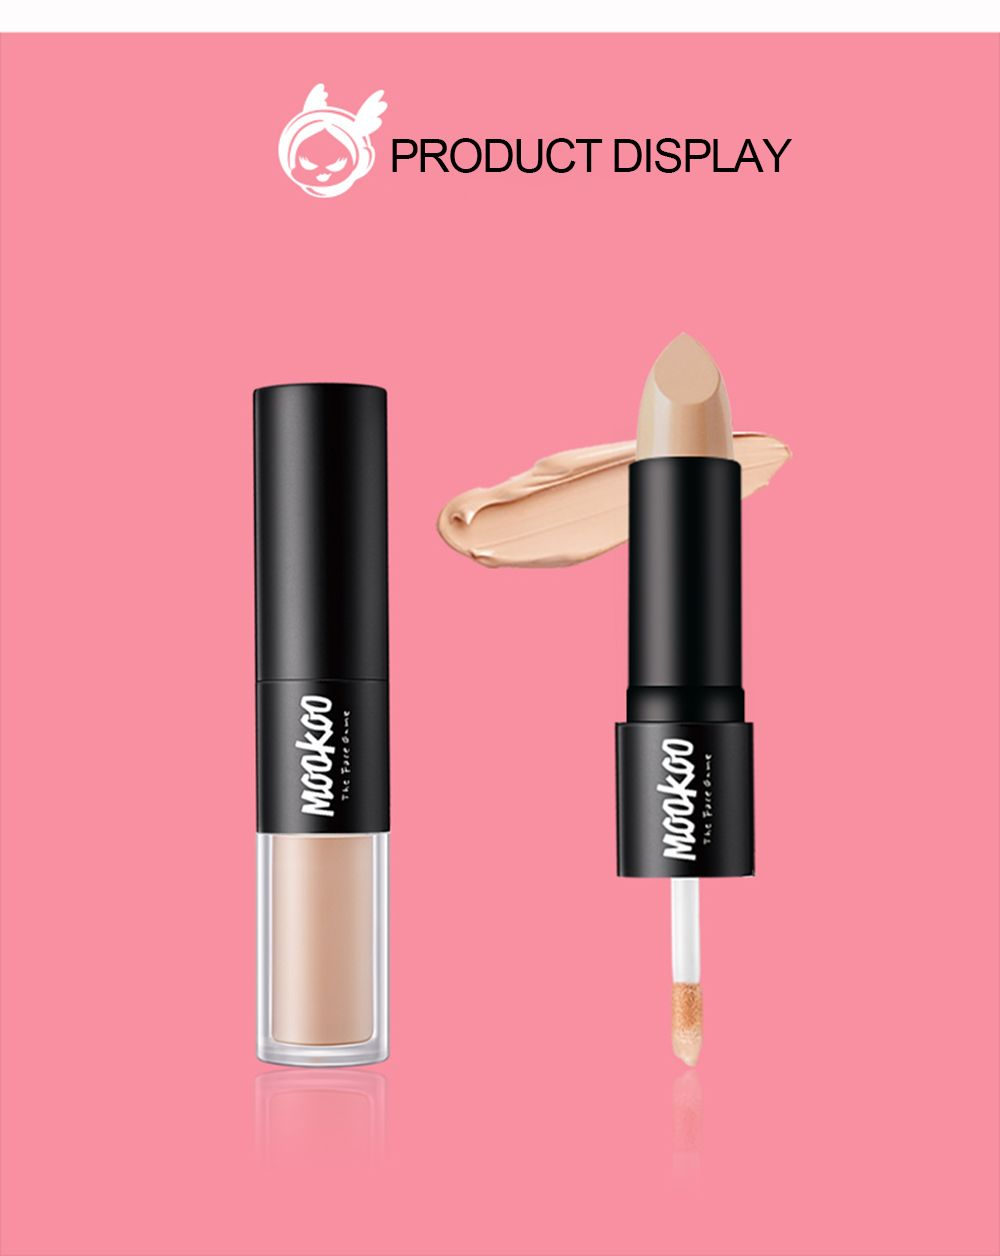 MOOKOO Perfect Ideal Concealer Duo Cover Up Black Eyes and Acne Mark